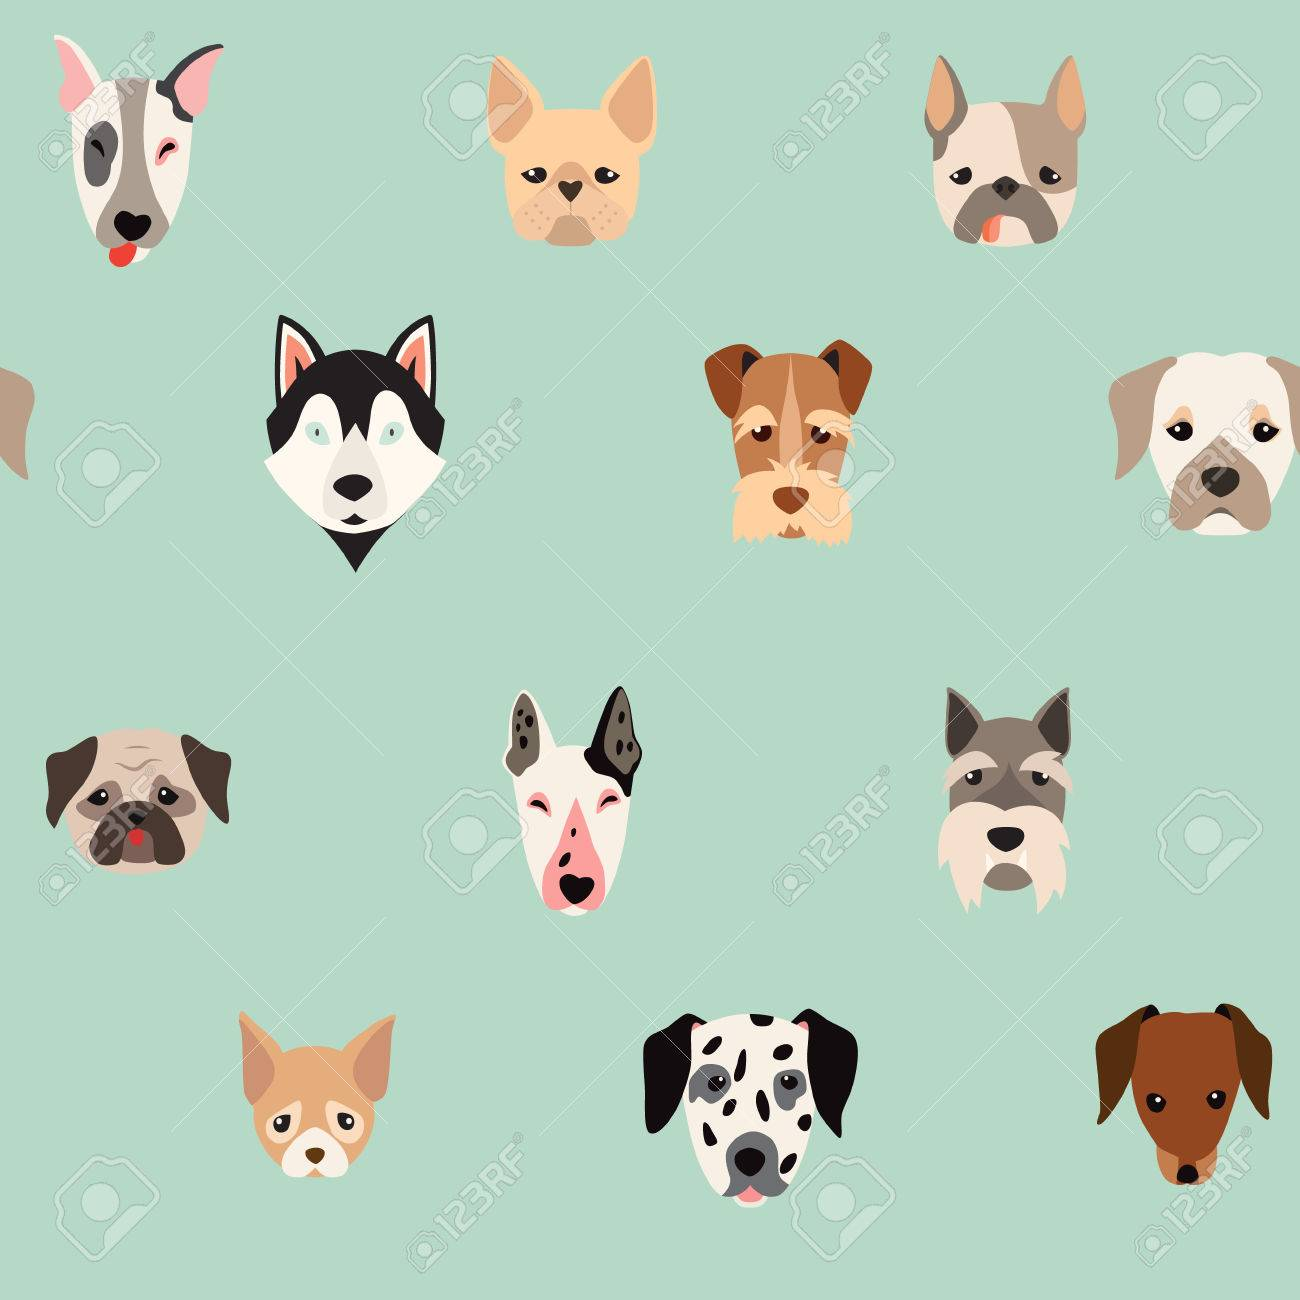 Cute dogs vector pattern illustrations on colored background cute dogs vector pattern illustrations on colored background stock vector 65979814 voltagebd Gallery